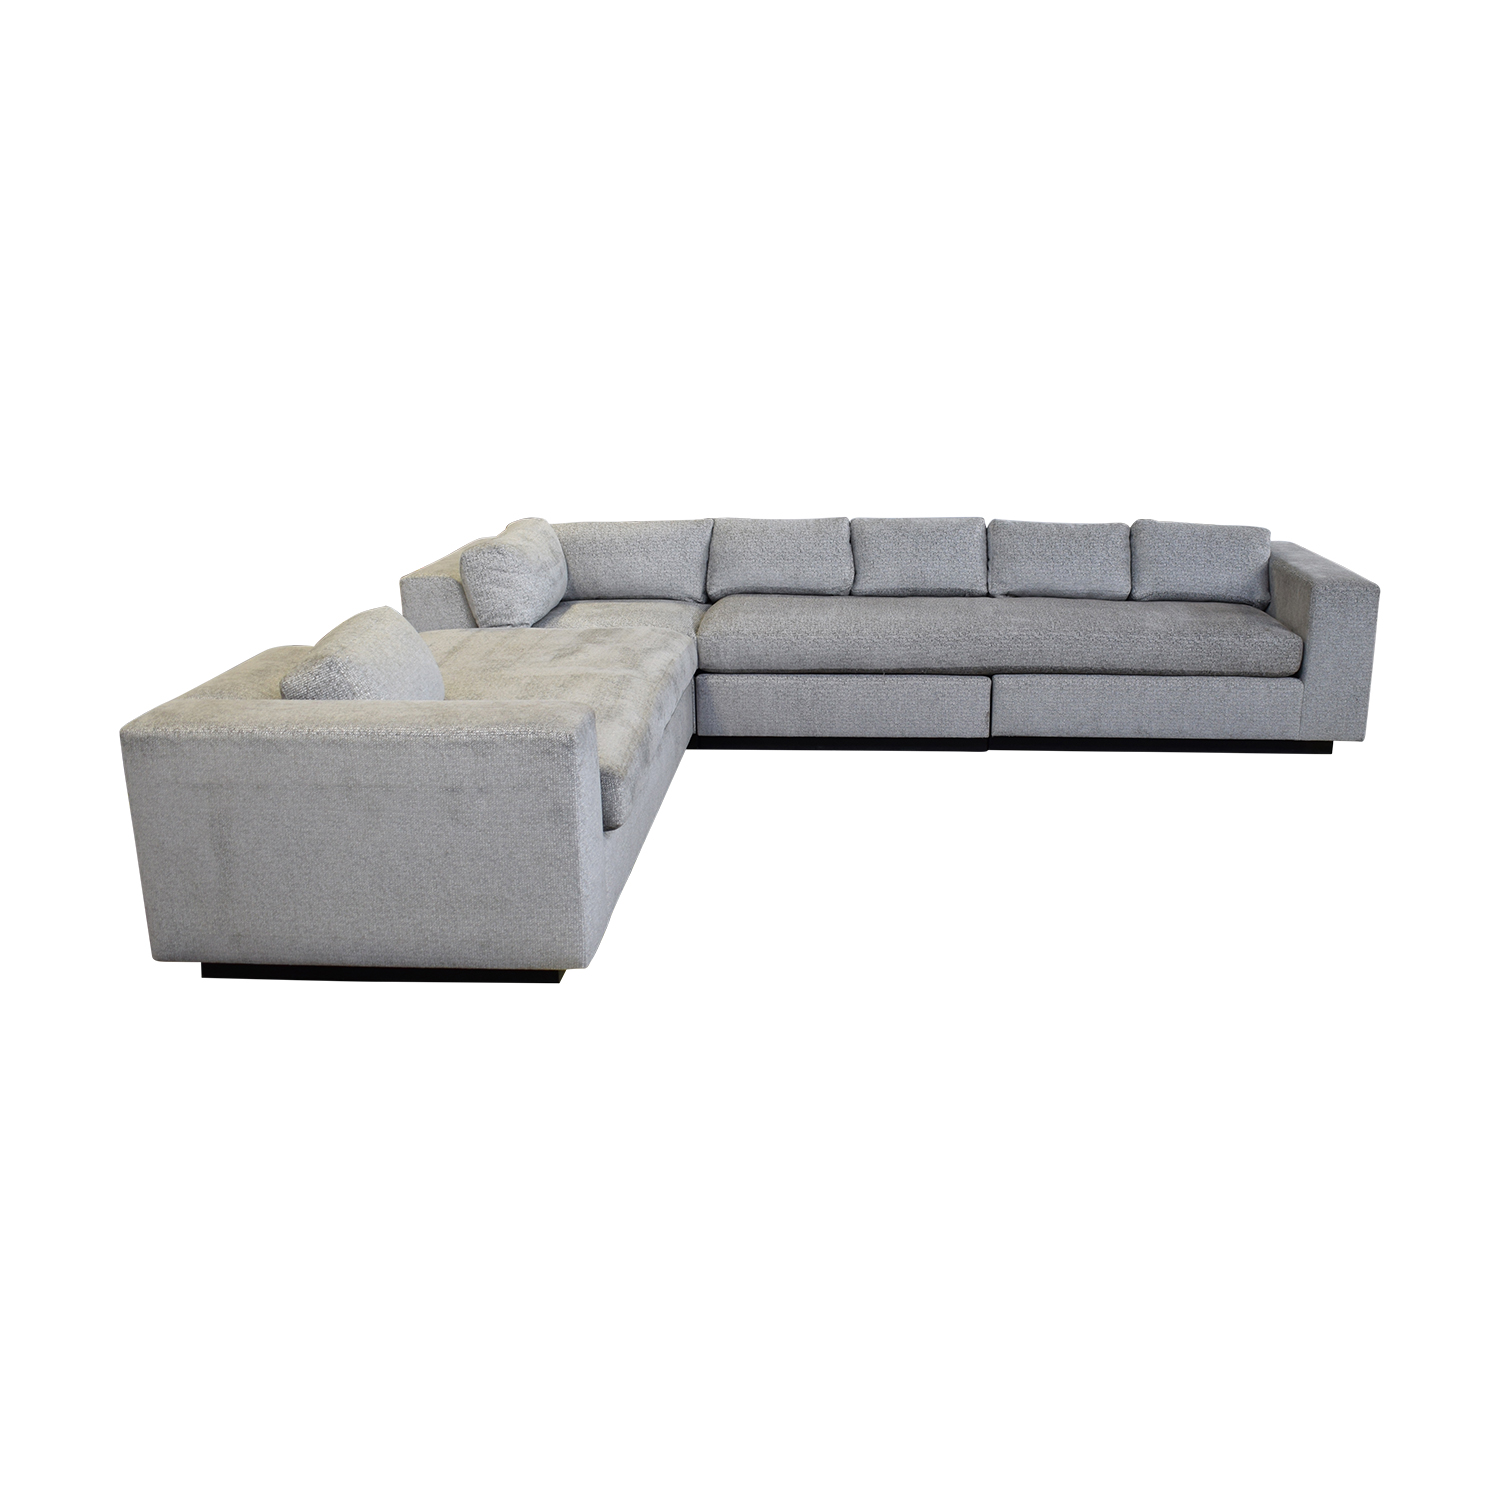 Ferrell Mittman Ferrell Mittman Cooper Sectional Sofa with Reverse Chaise discount